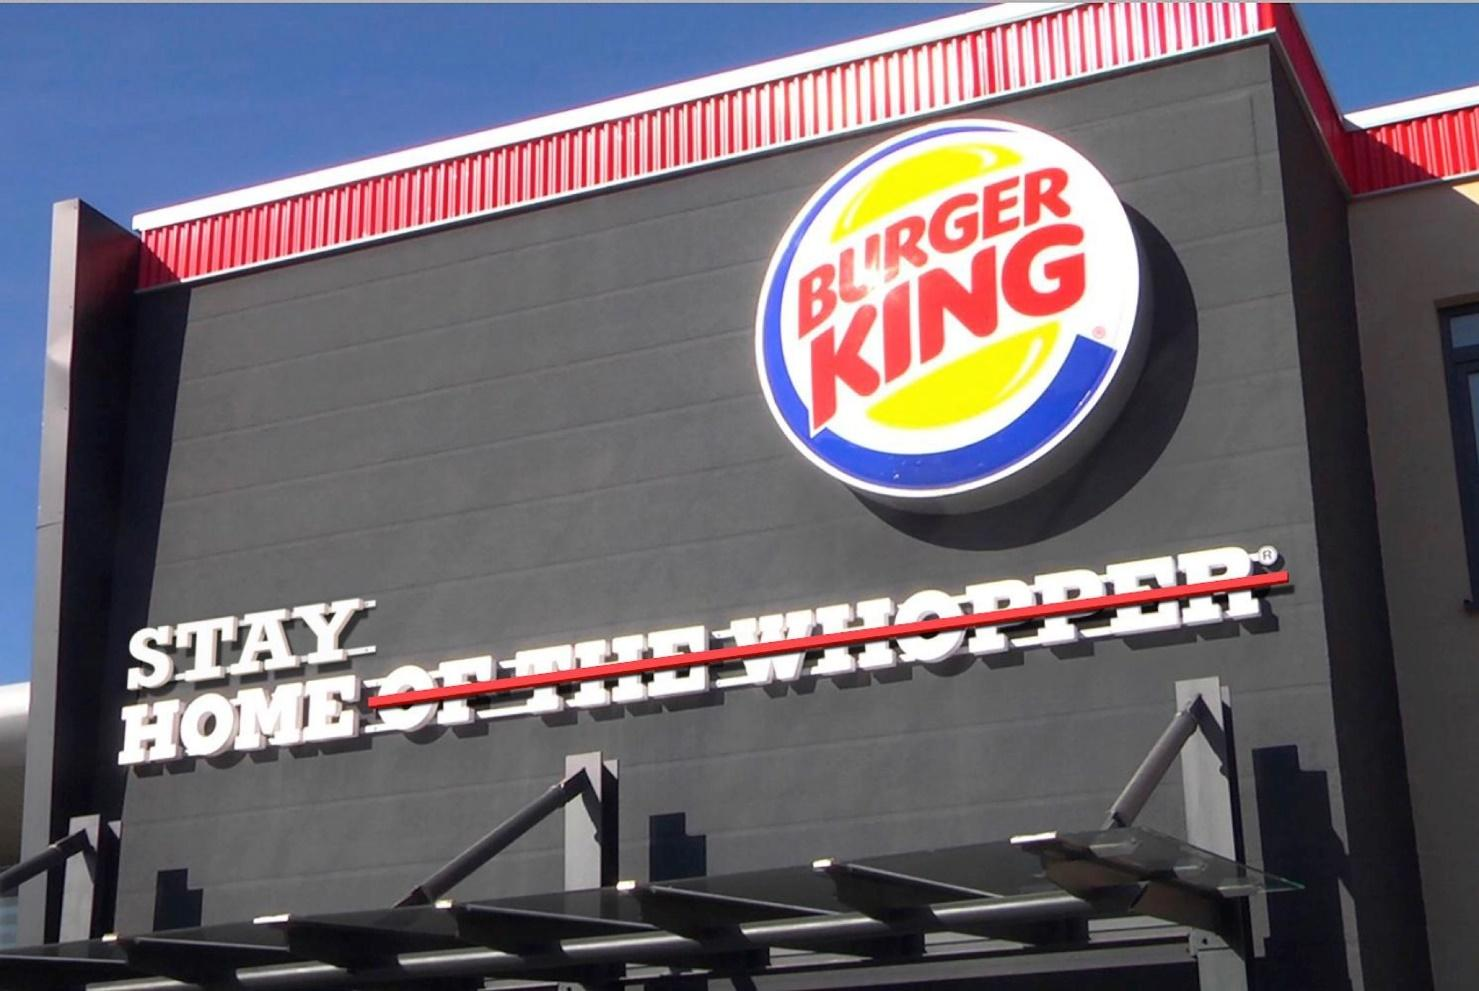 Burger King Outdoor Advert By : Stay Home   Ads of the World™